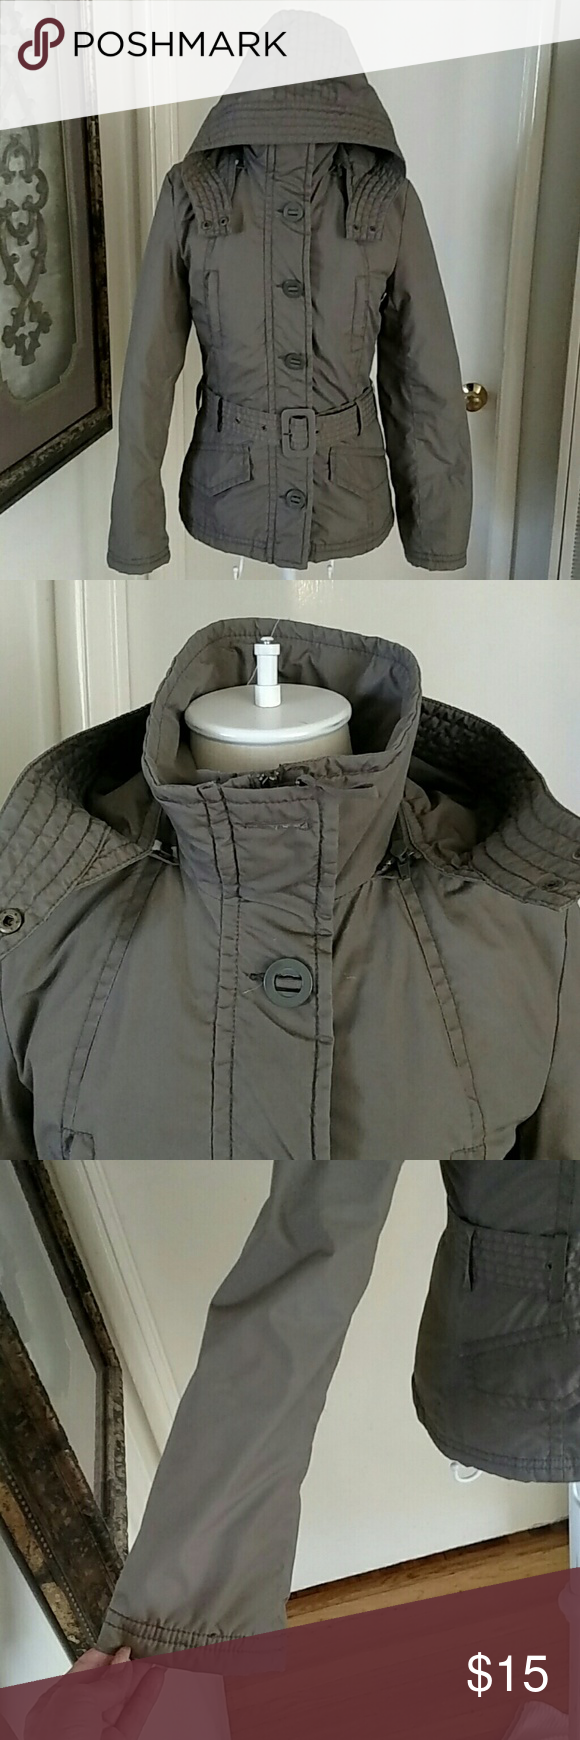 H & M Olive puffer jacket size 4 Jackets, Clothes design